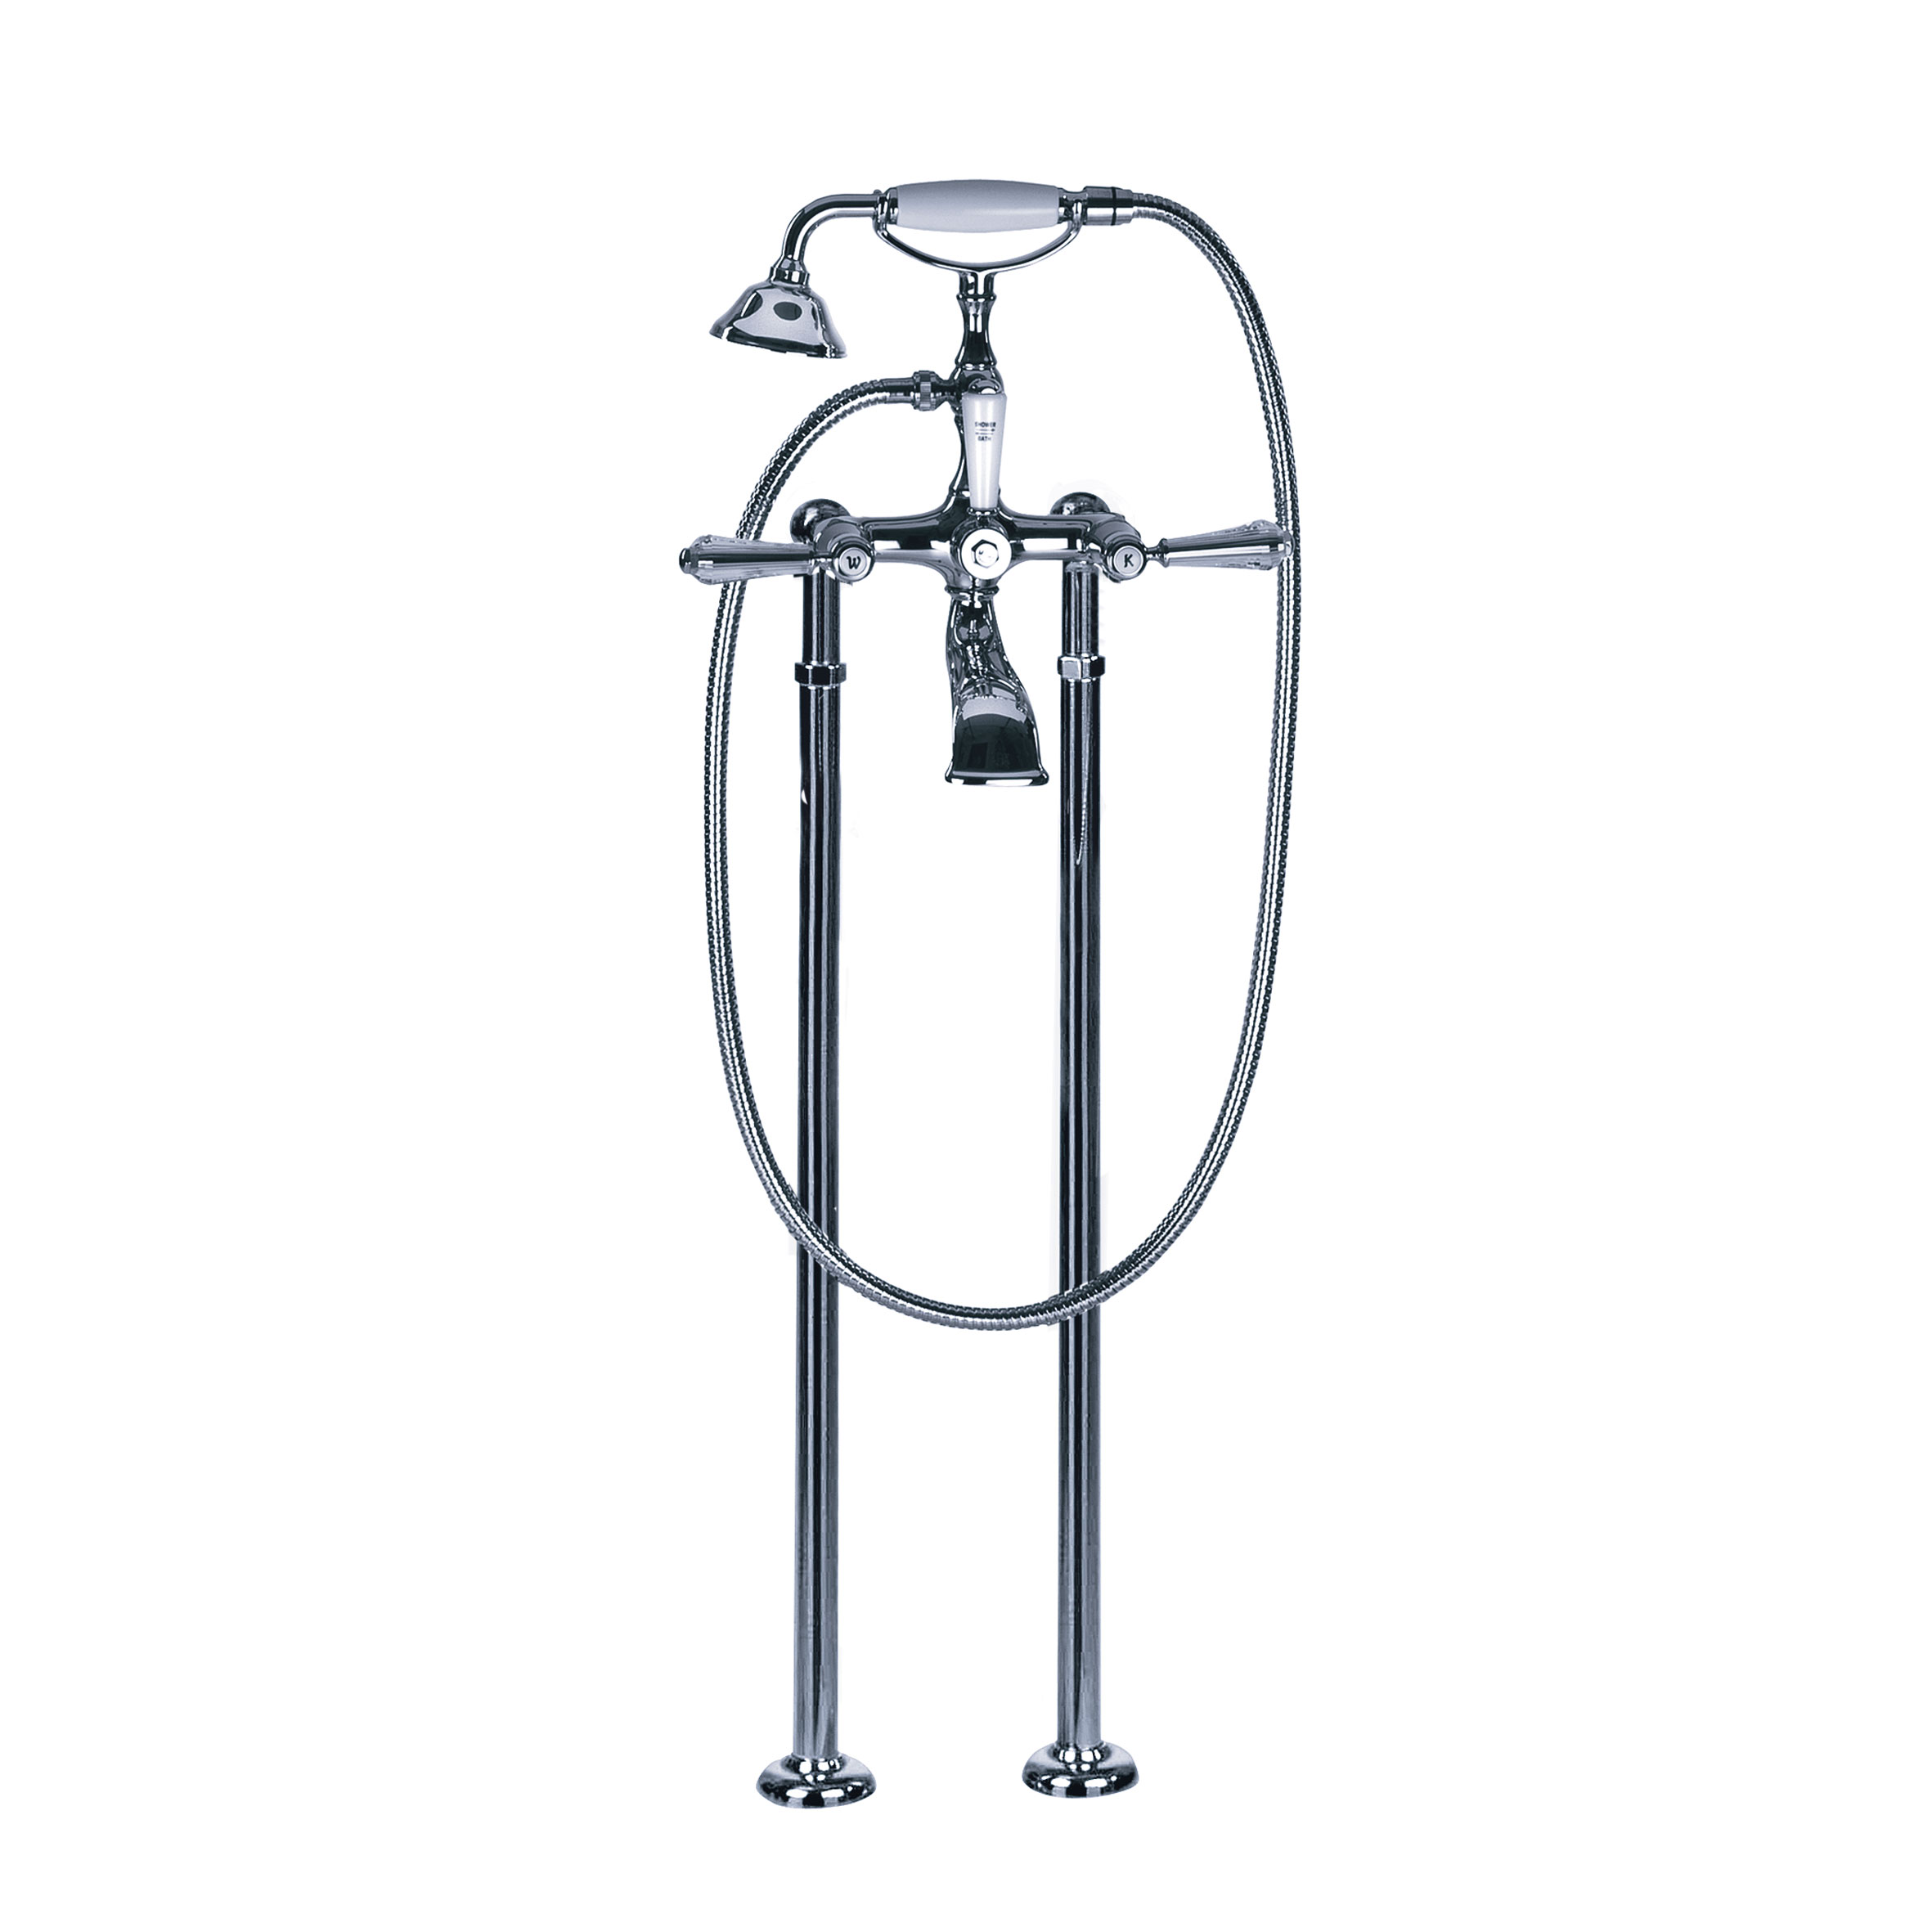 Bath tub mixer - Tub/shower mixer for supply pipes, incl. shower set - Article No. 129.20.140.xxx-AA